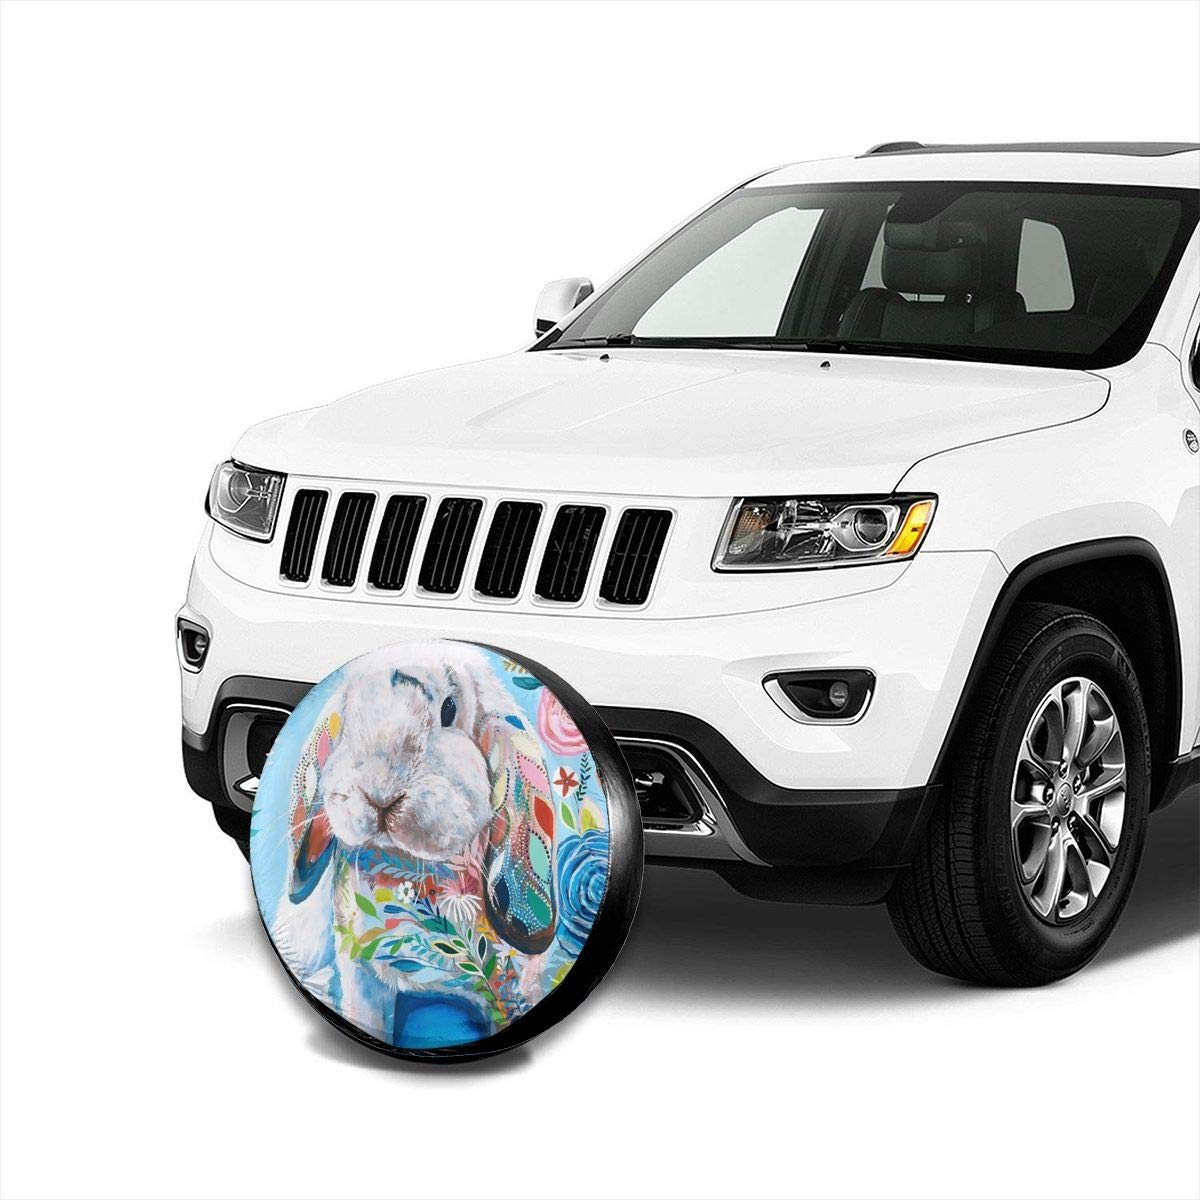 Fits Entire Wheel PecoStar Colourful Rabbit Spare Wheel Cover Printed Polyester Tire Guard Protector Cover For SUV RV Trailer Truck Wheel